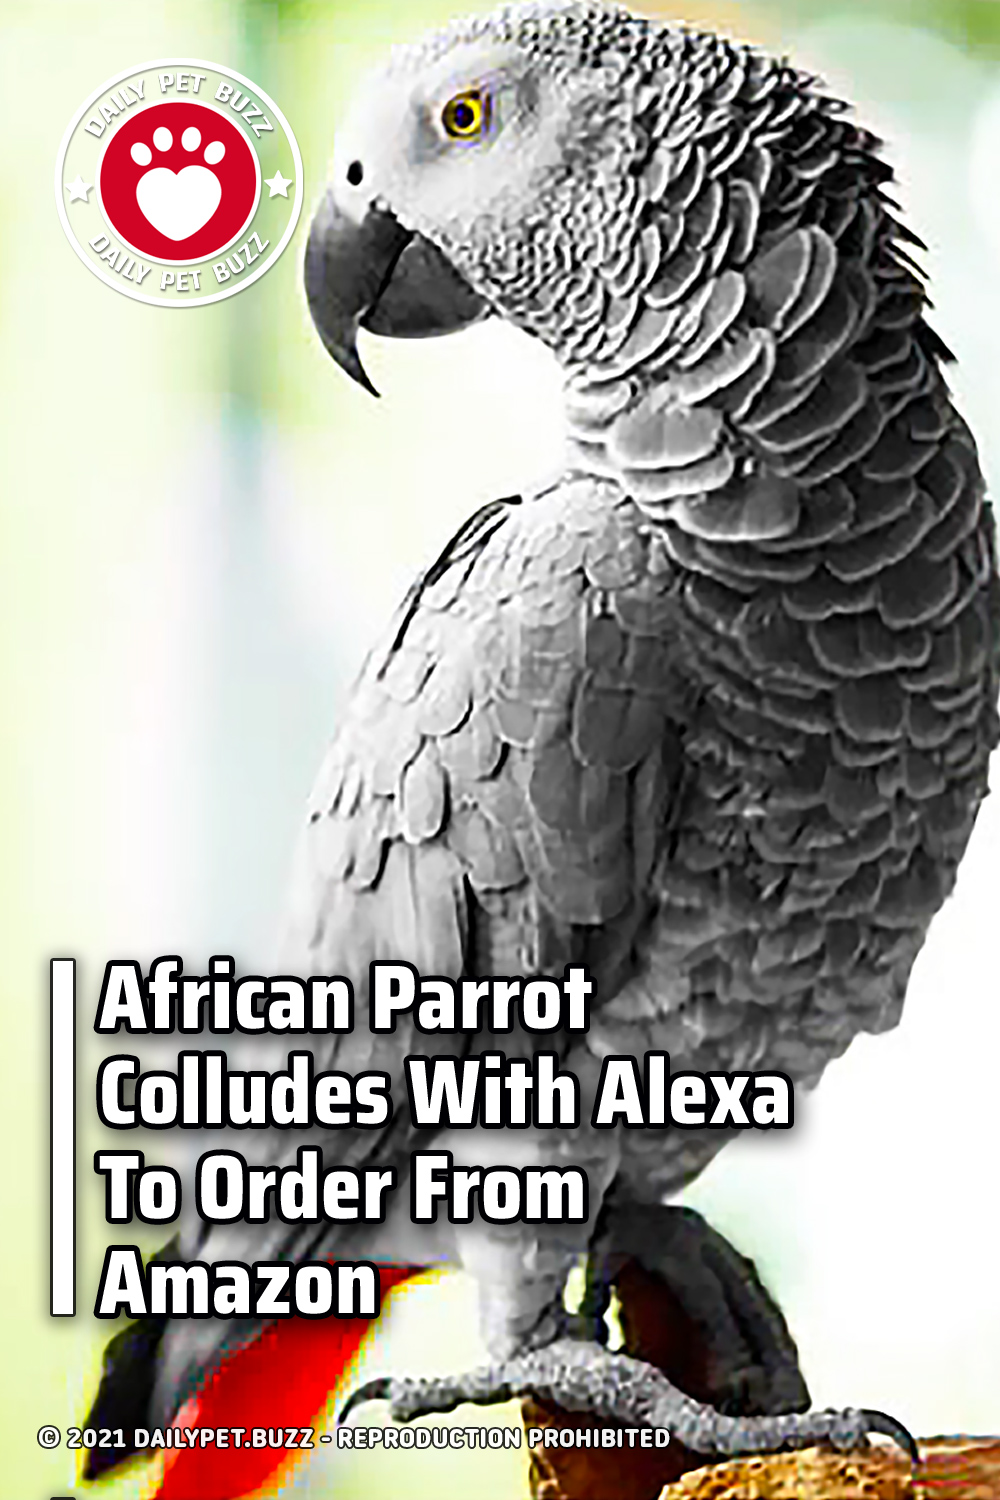 African Parrot Colludes With Alexa To Order From Amazon